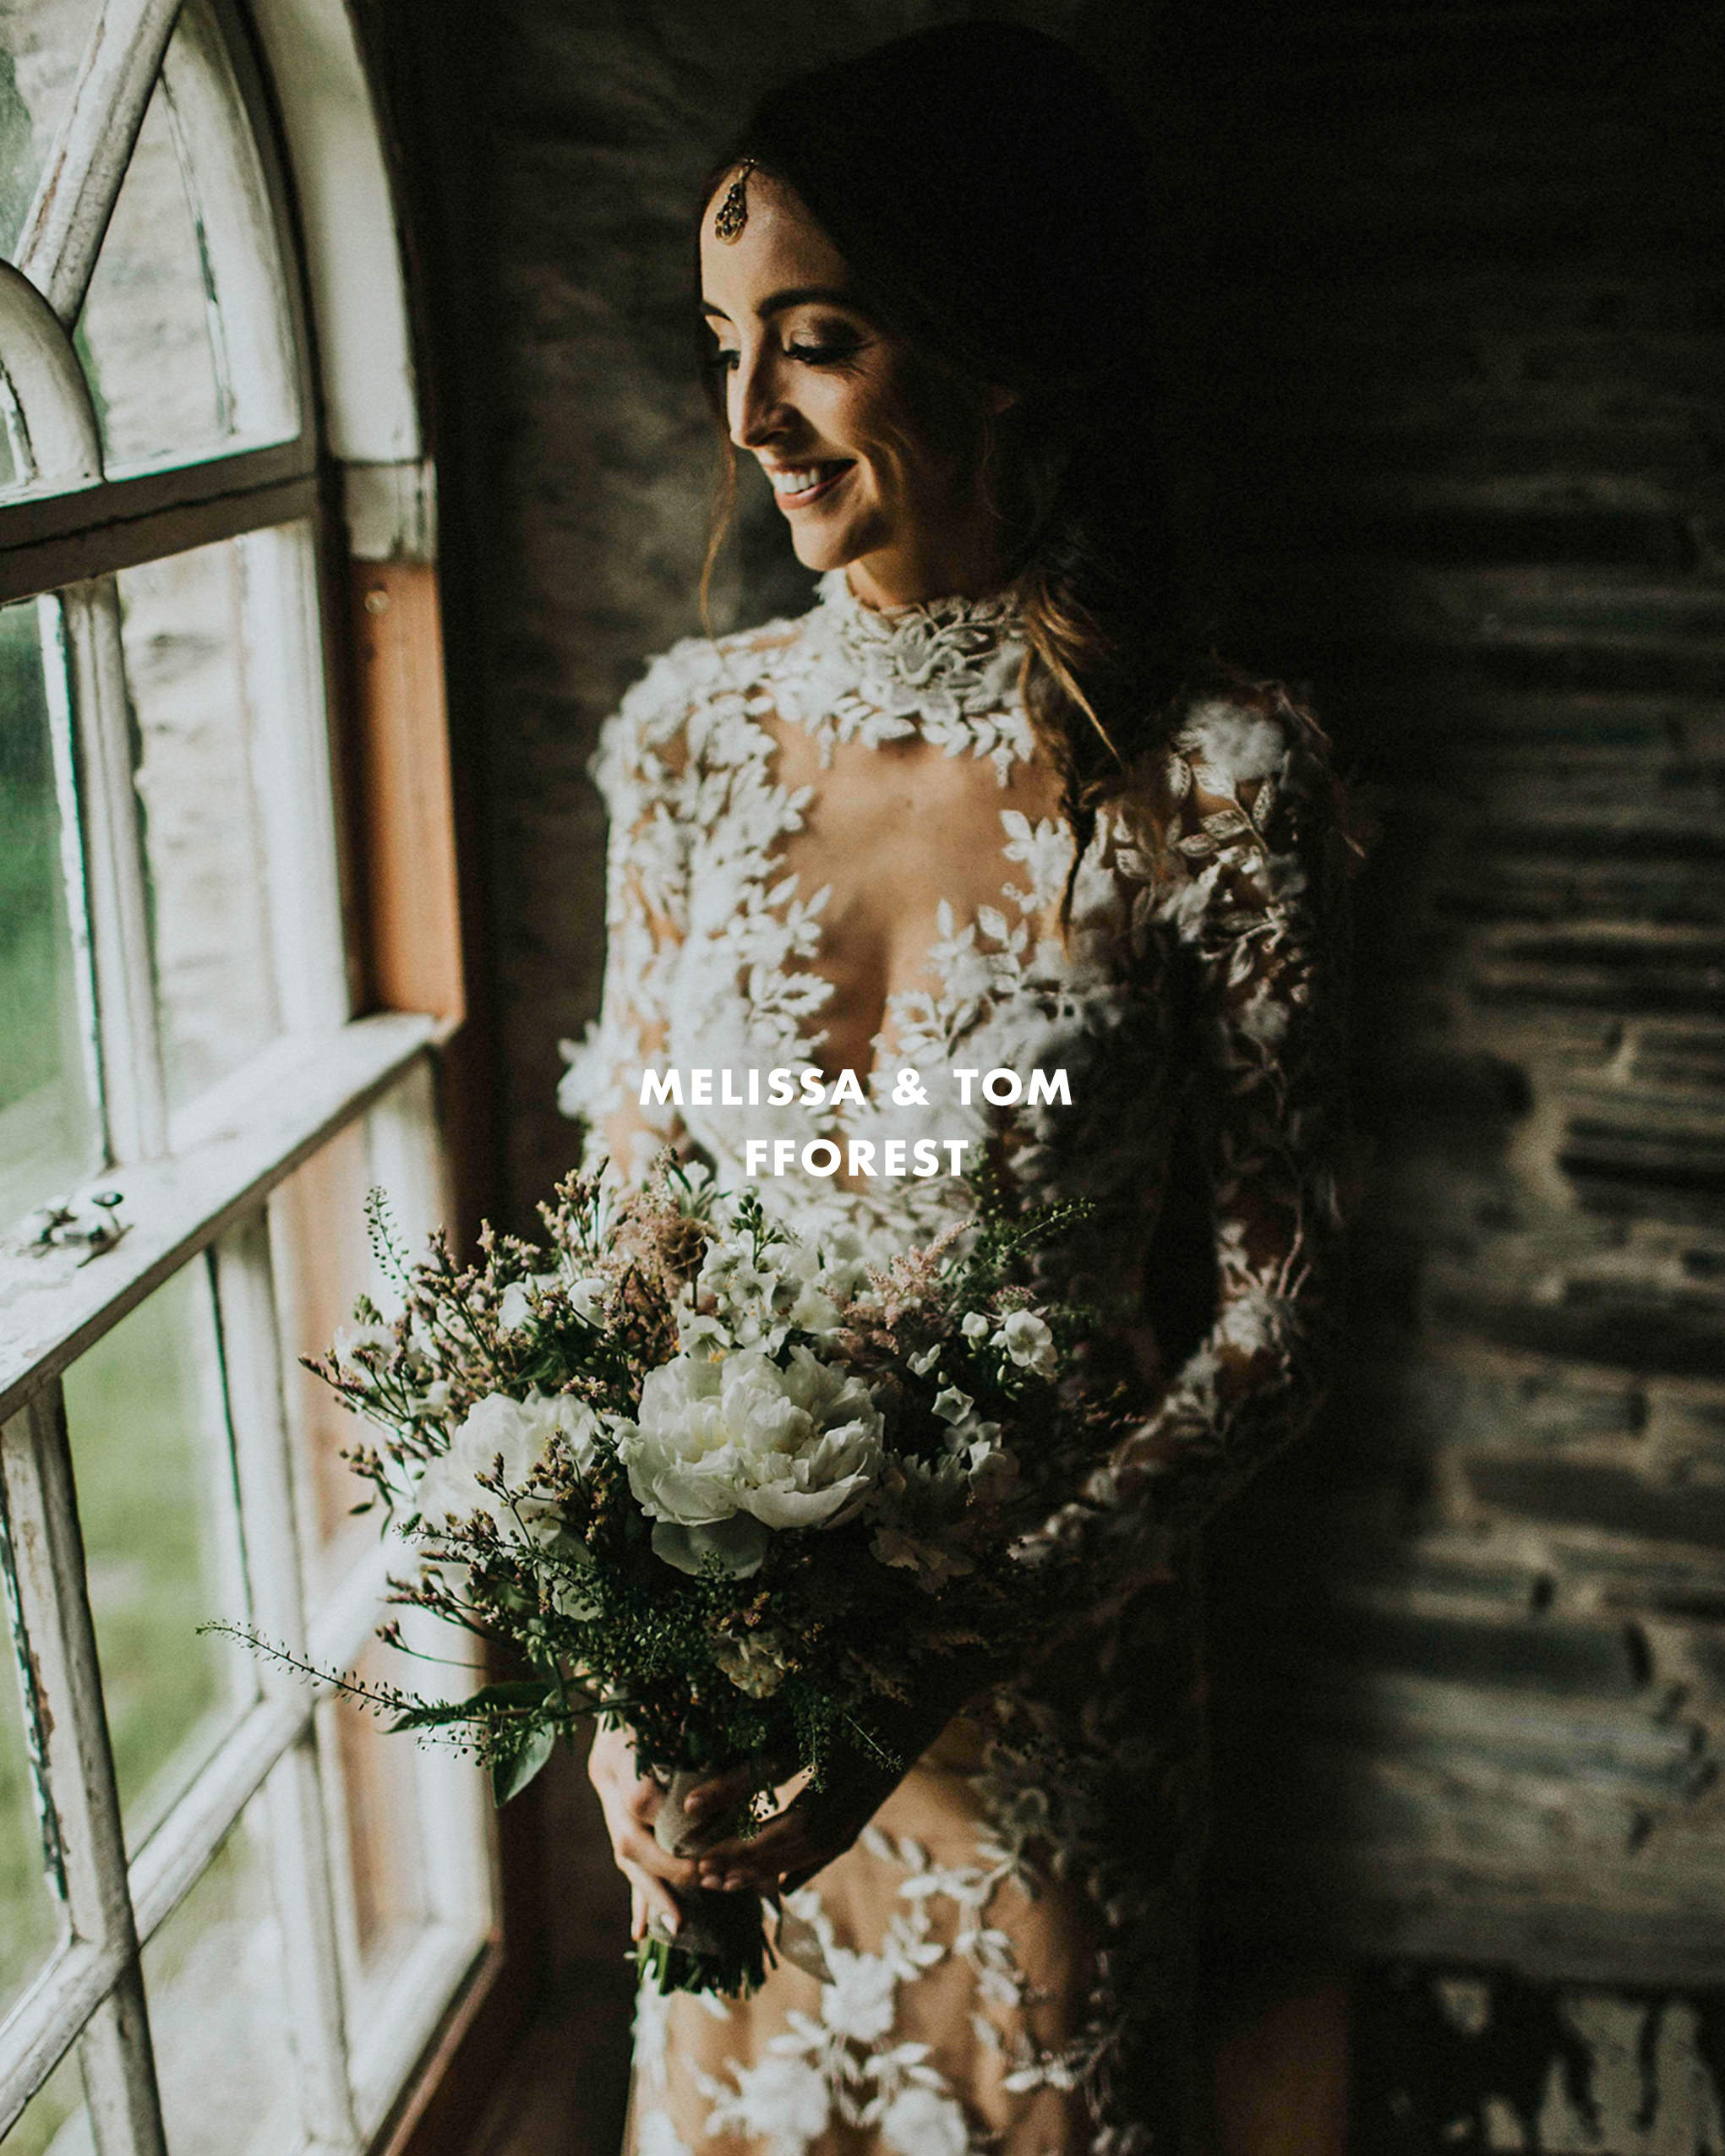 MELISSA & TOM | FFOREST